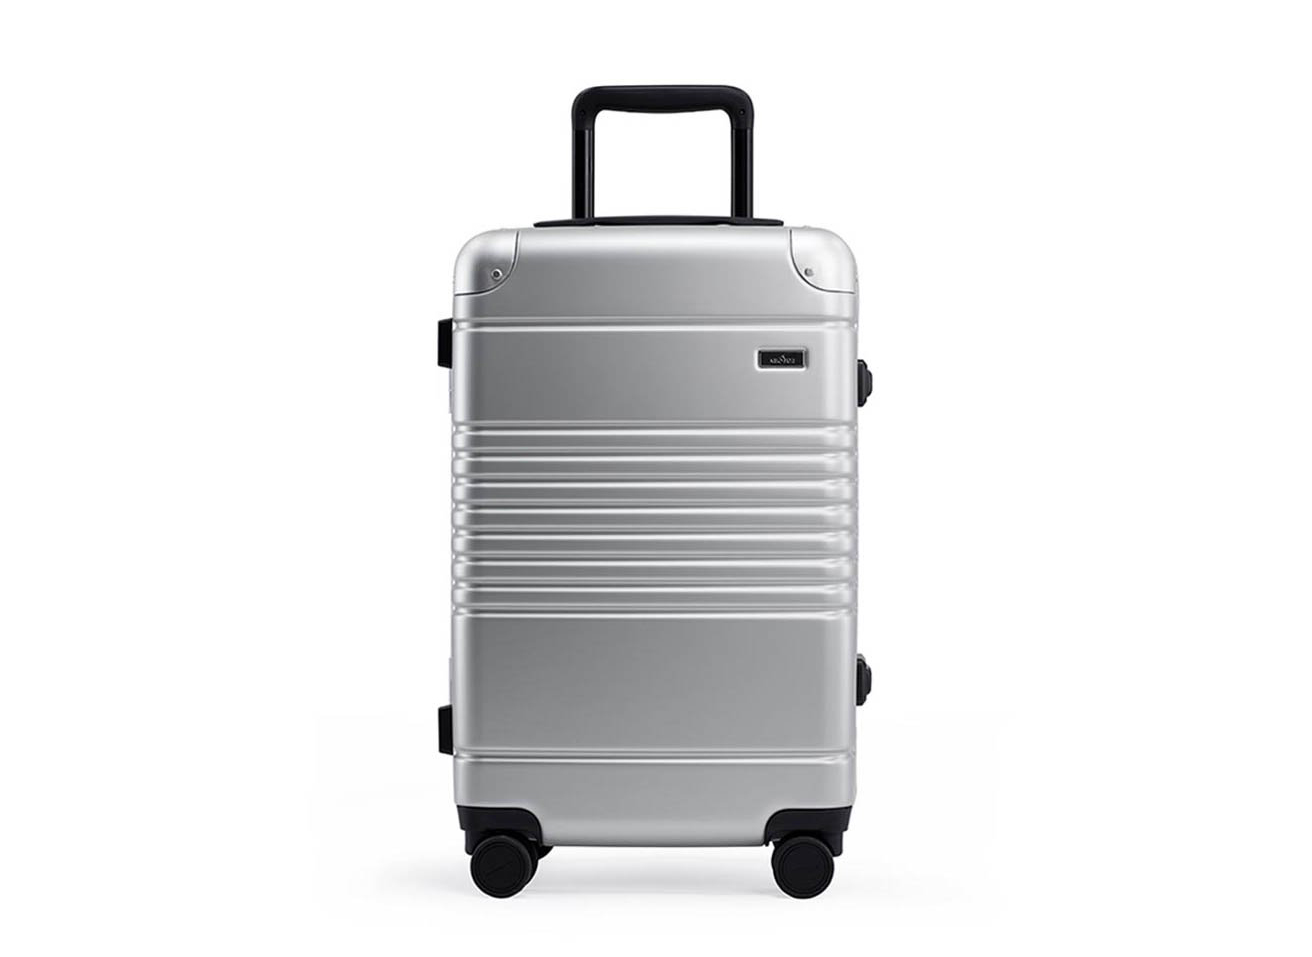 Arlo Skye silver Style + Design suitcase product product design accessory case hand luggage luggage & bags